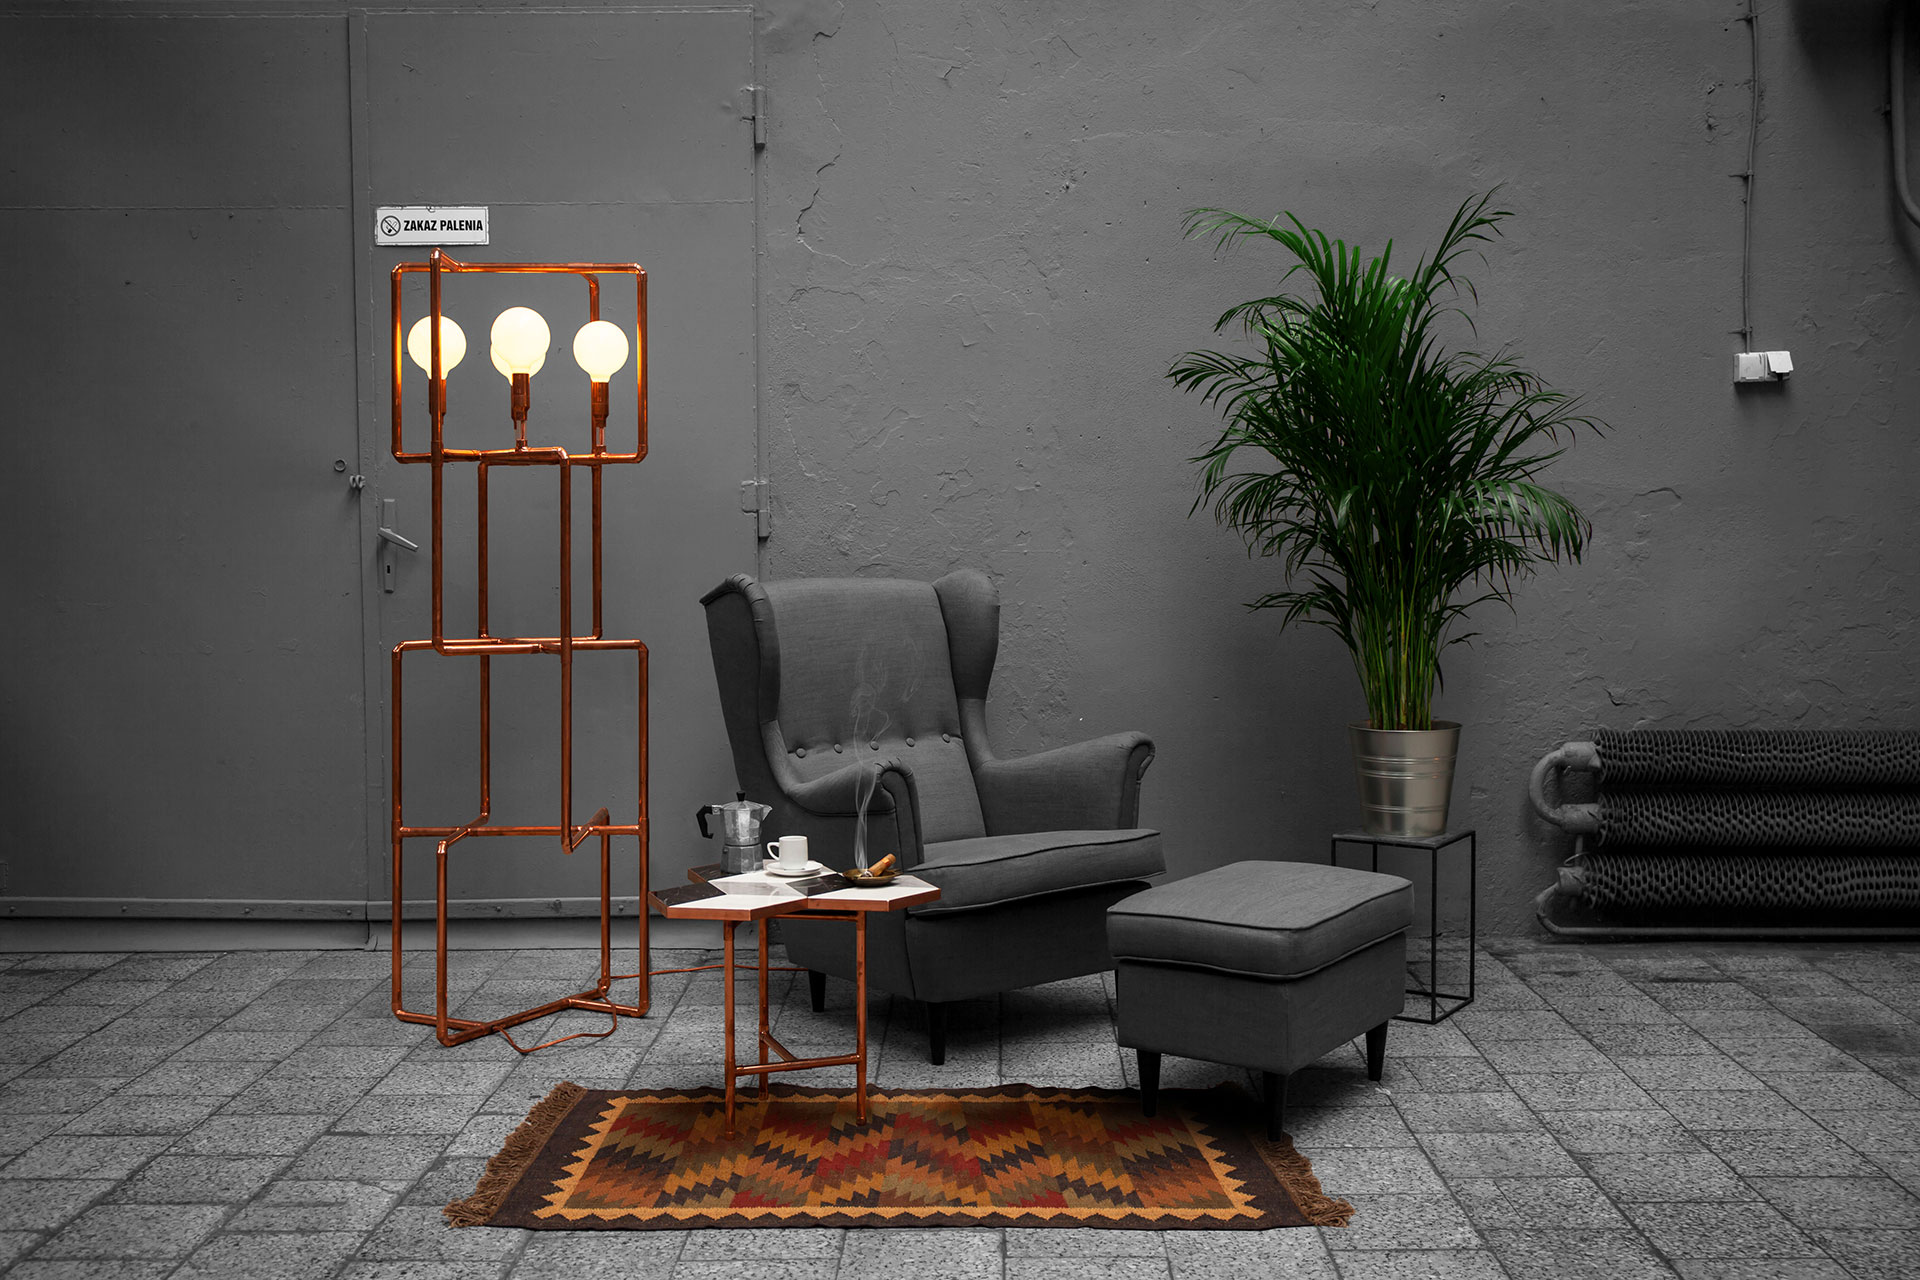 Decorative floor lamp made of trendy copper in loft style hotel lobby